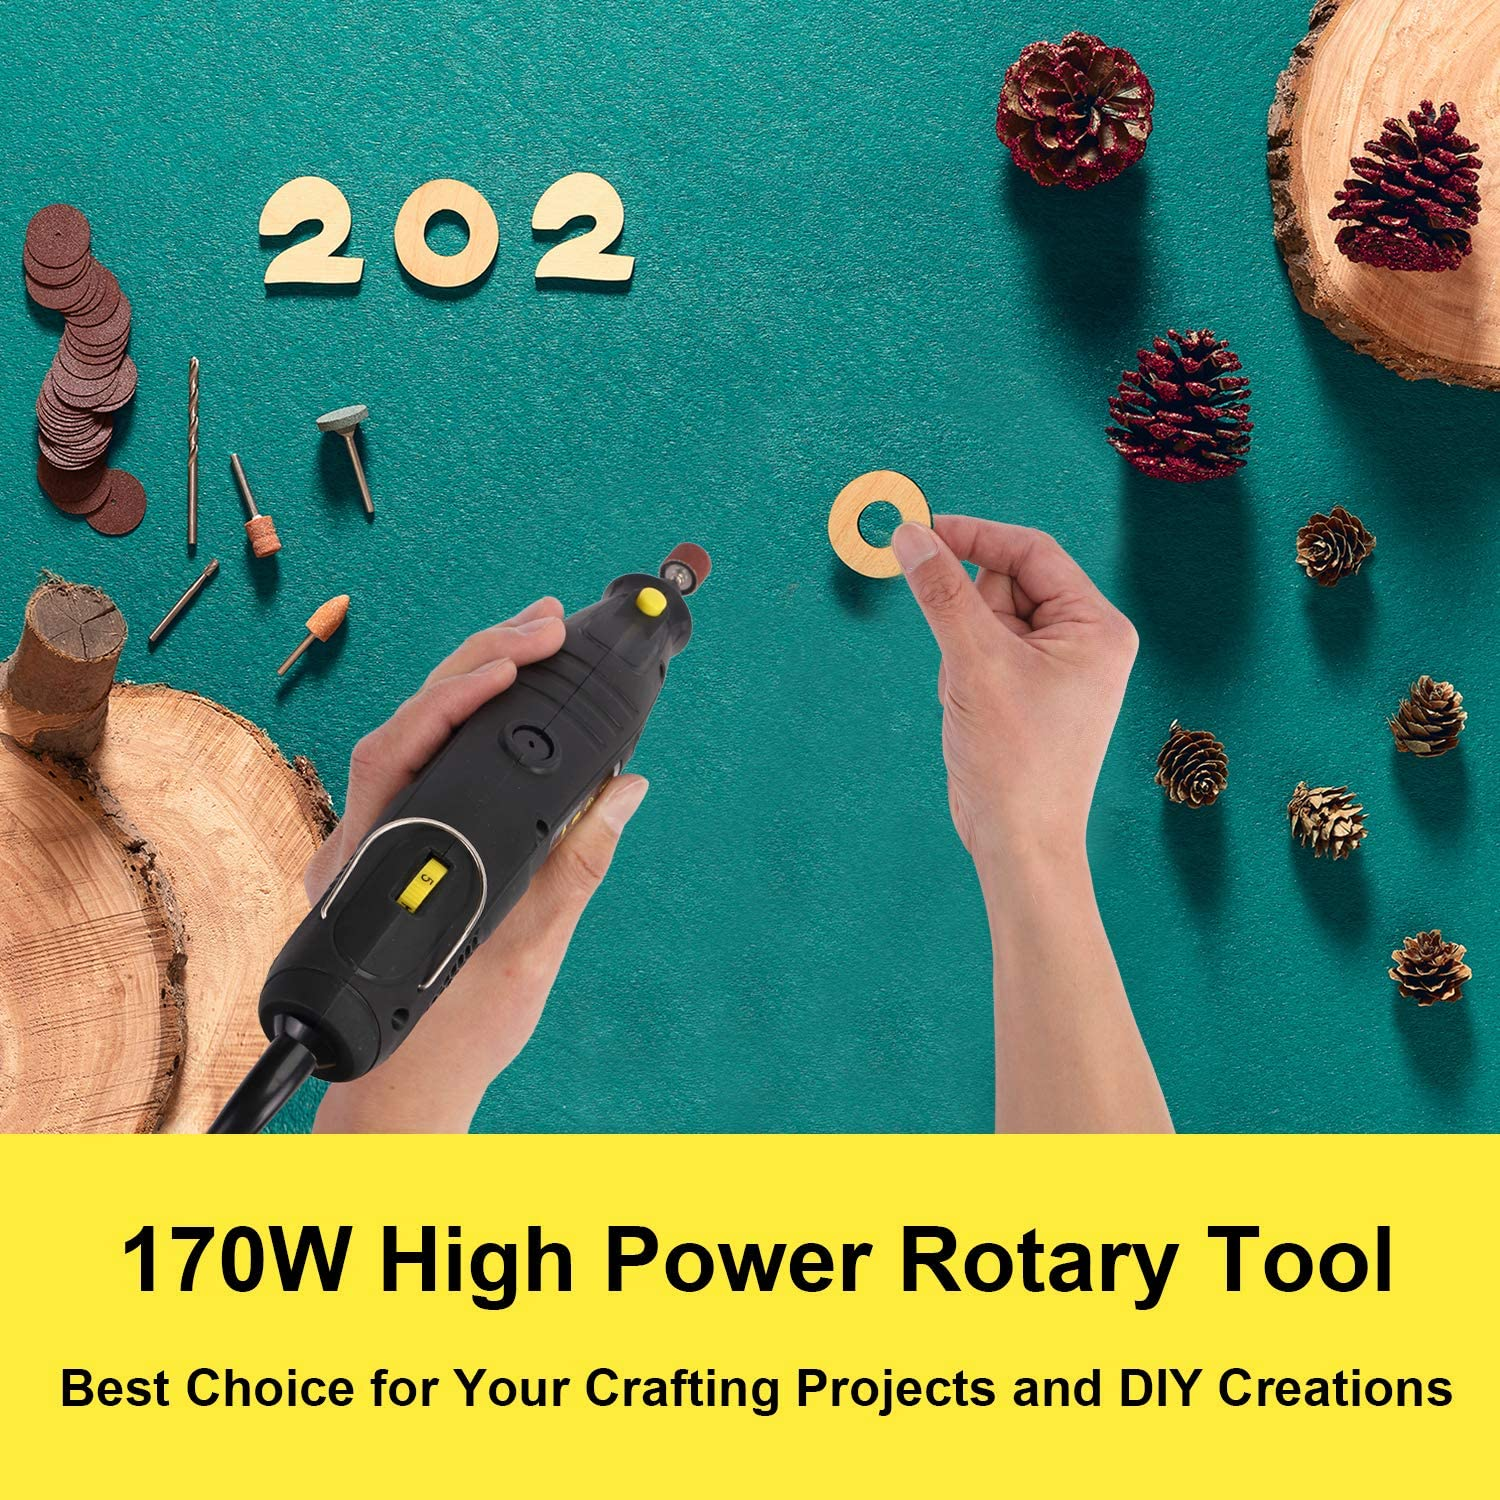 Rotary Tool, 1.5Amp High Power Variable Speed Electric Rotary Tool Kit with Flex Shaft, 3 Attachments and 112pcs Accessories for Crafting Projects and DIY Creations, CUBEWAY - -